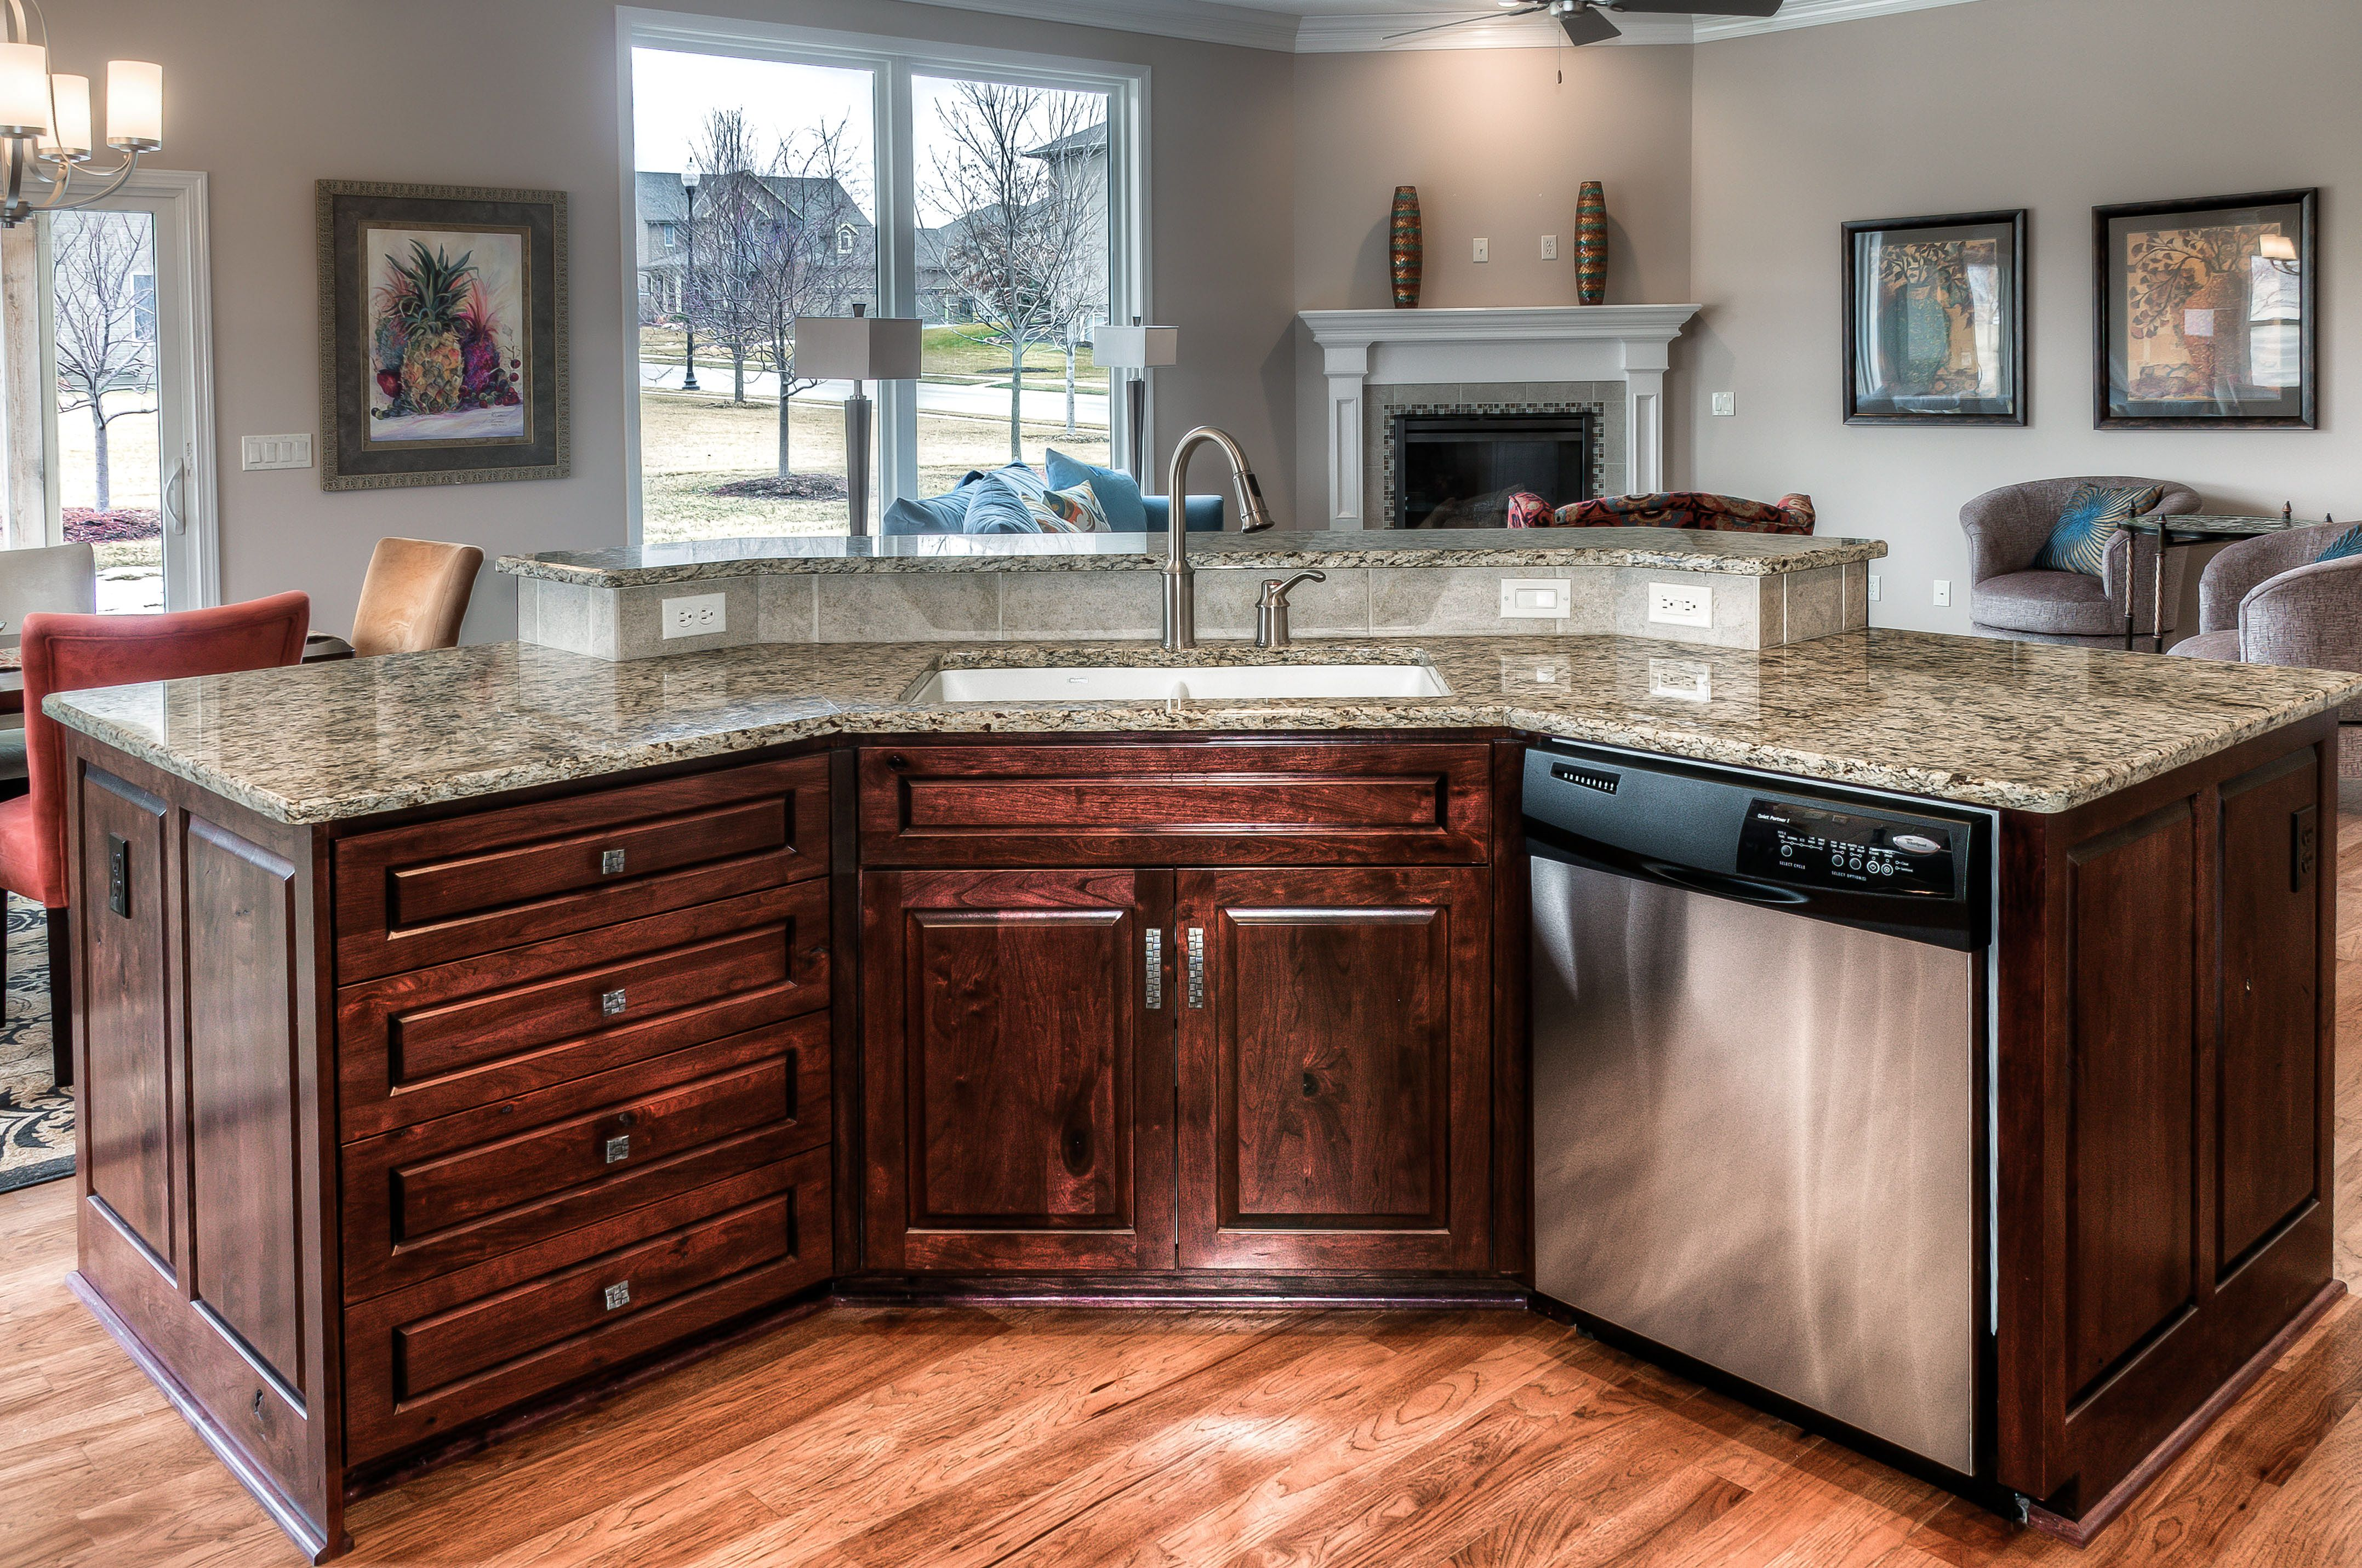 Woodland Homes Kitchen Island Bat Wing Style Birch Cabinets Granite Counter Top Brushed Nickel Faucet Holds Stainless Steel Dishwasher